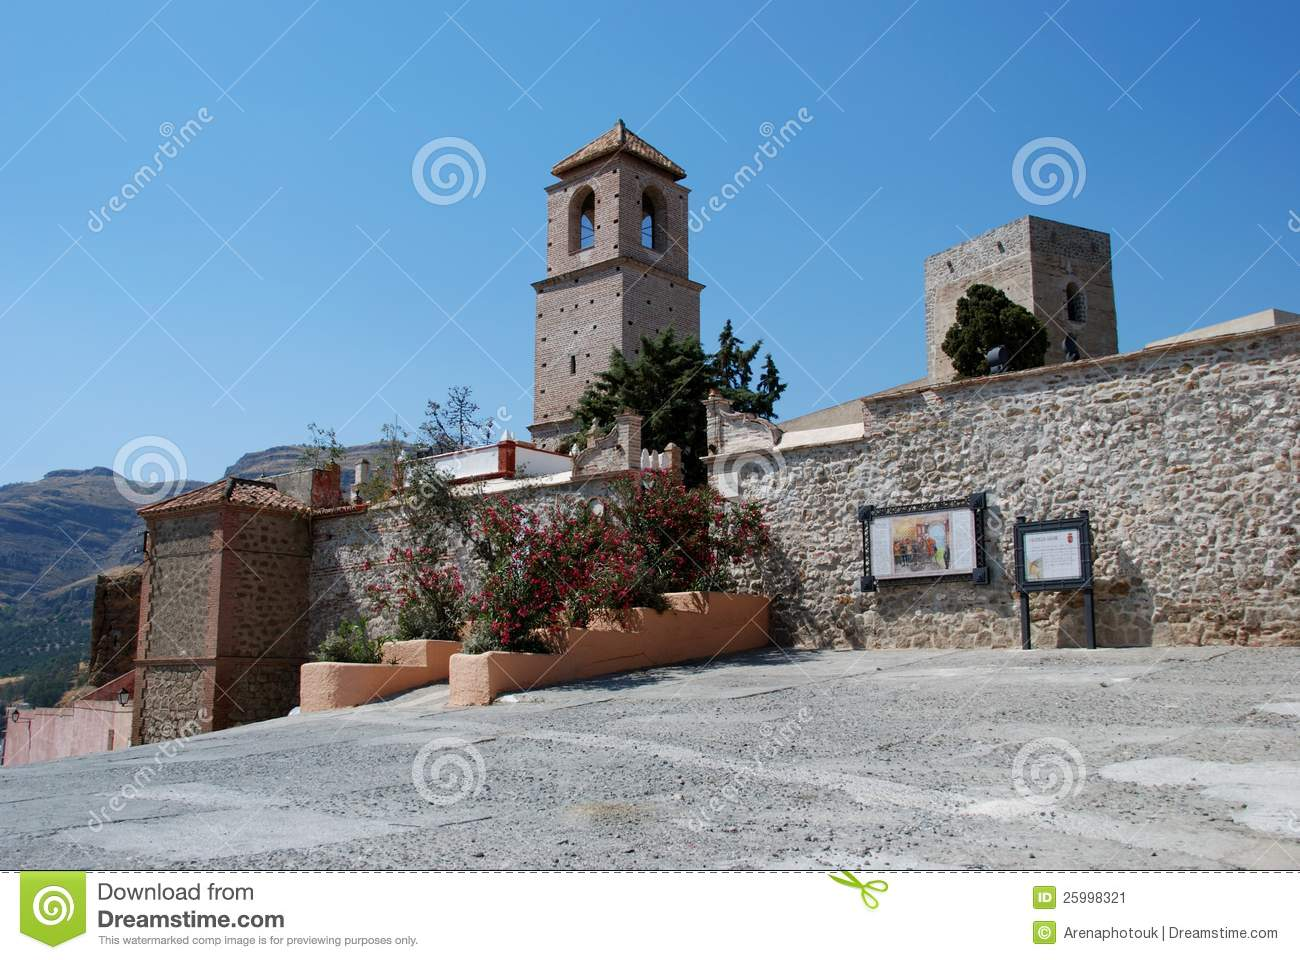 Alora Spain  City pictures : Castle And Church, Alora, Spain. Stock Image Image: 25998321